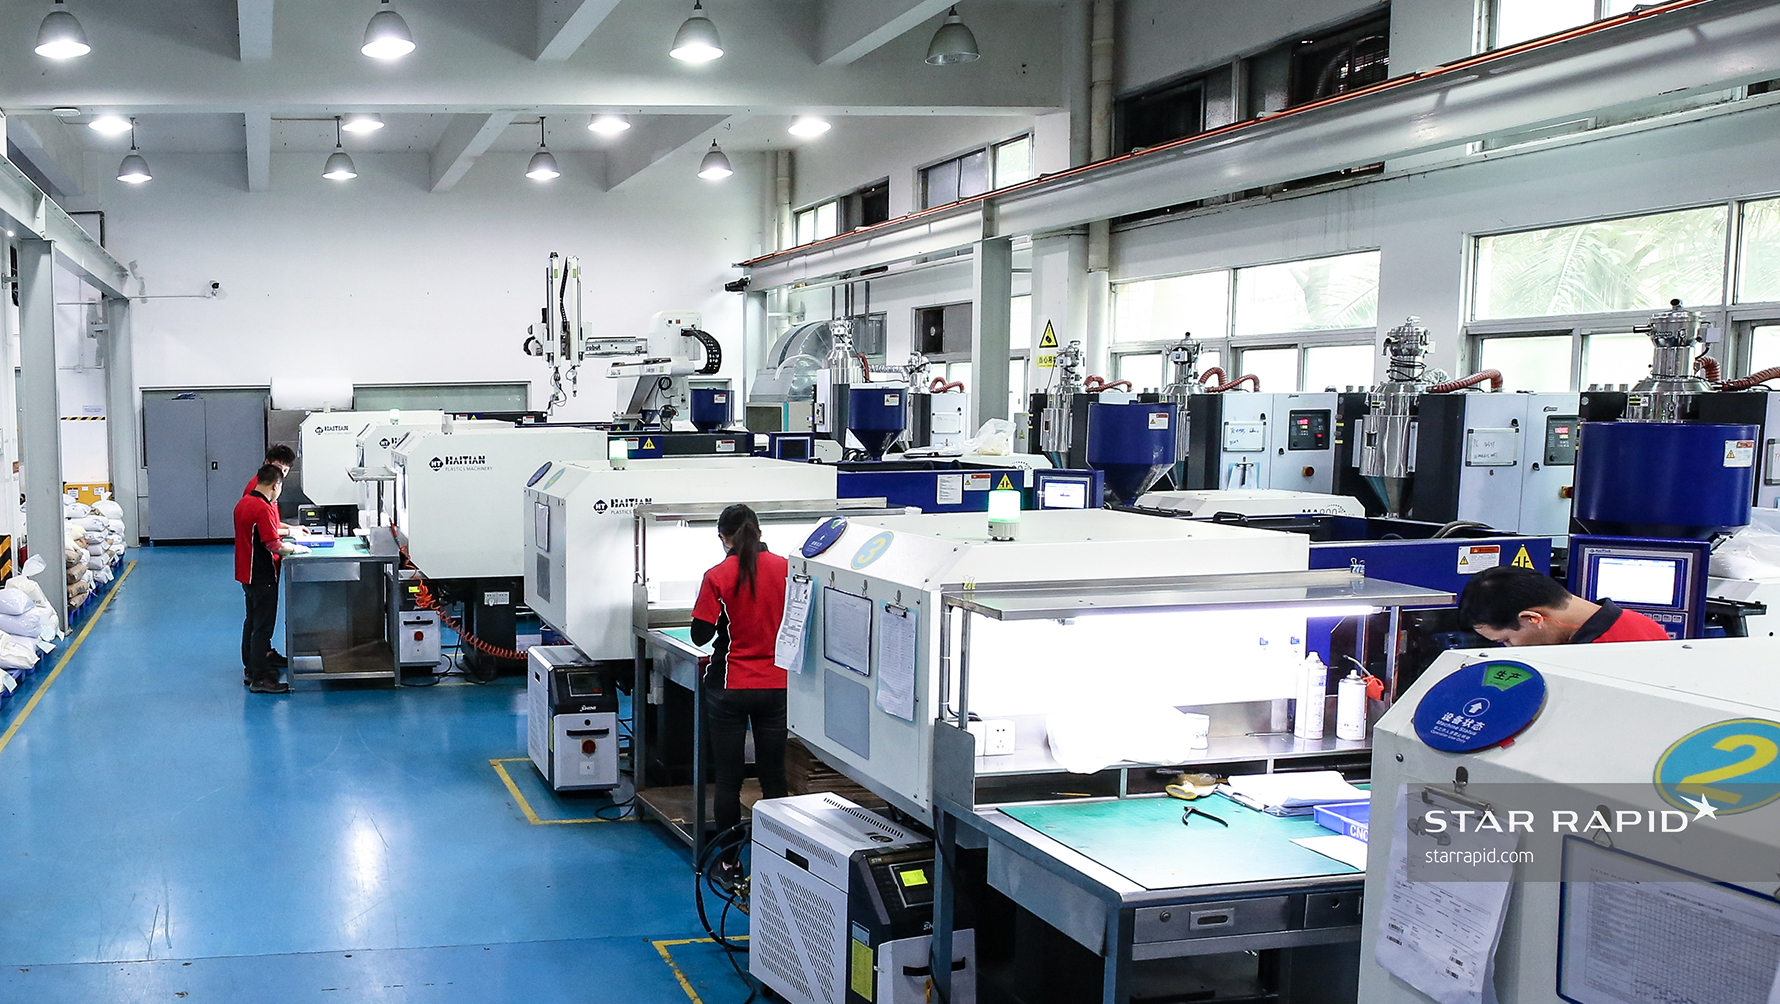 Star Rapid Employees and Manufacturing Equipment at Facility in Zhongshan